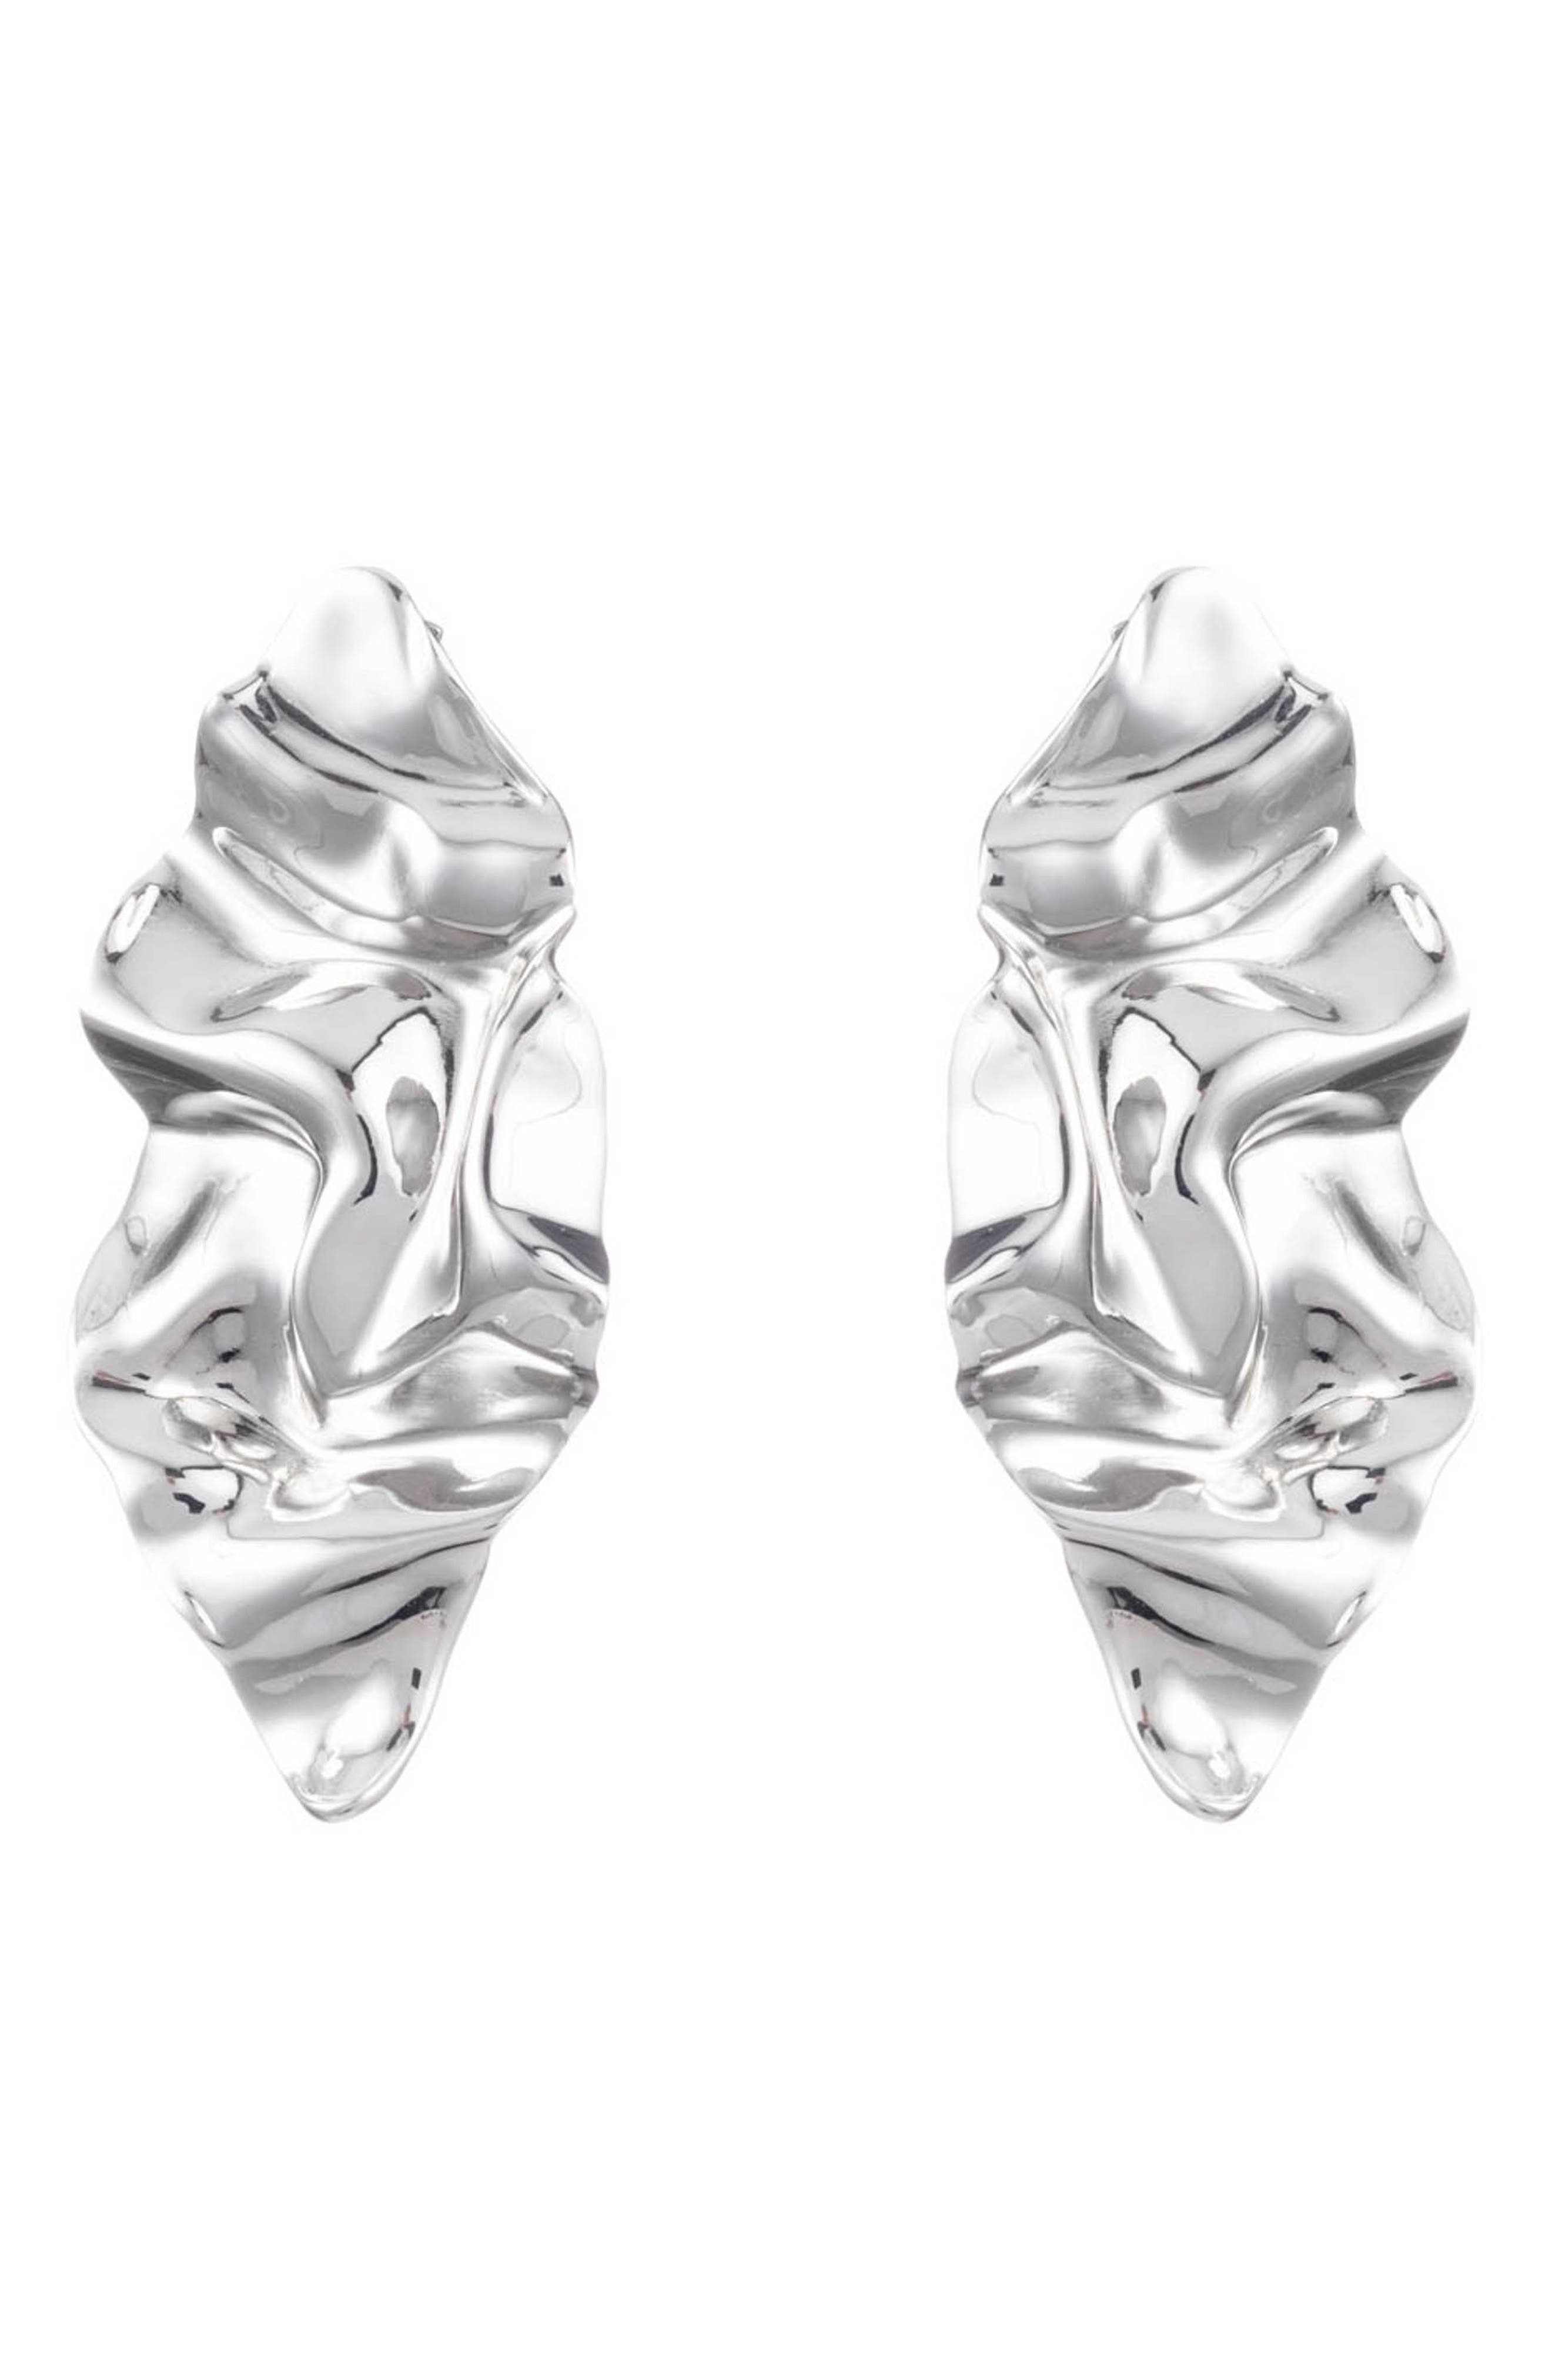 Crumpled Drop Earrings,                             Main thumbnail 1, color,                             SILVER